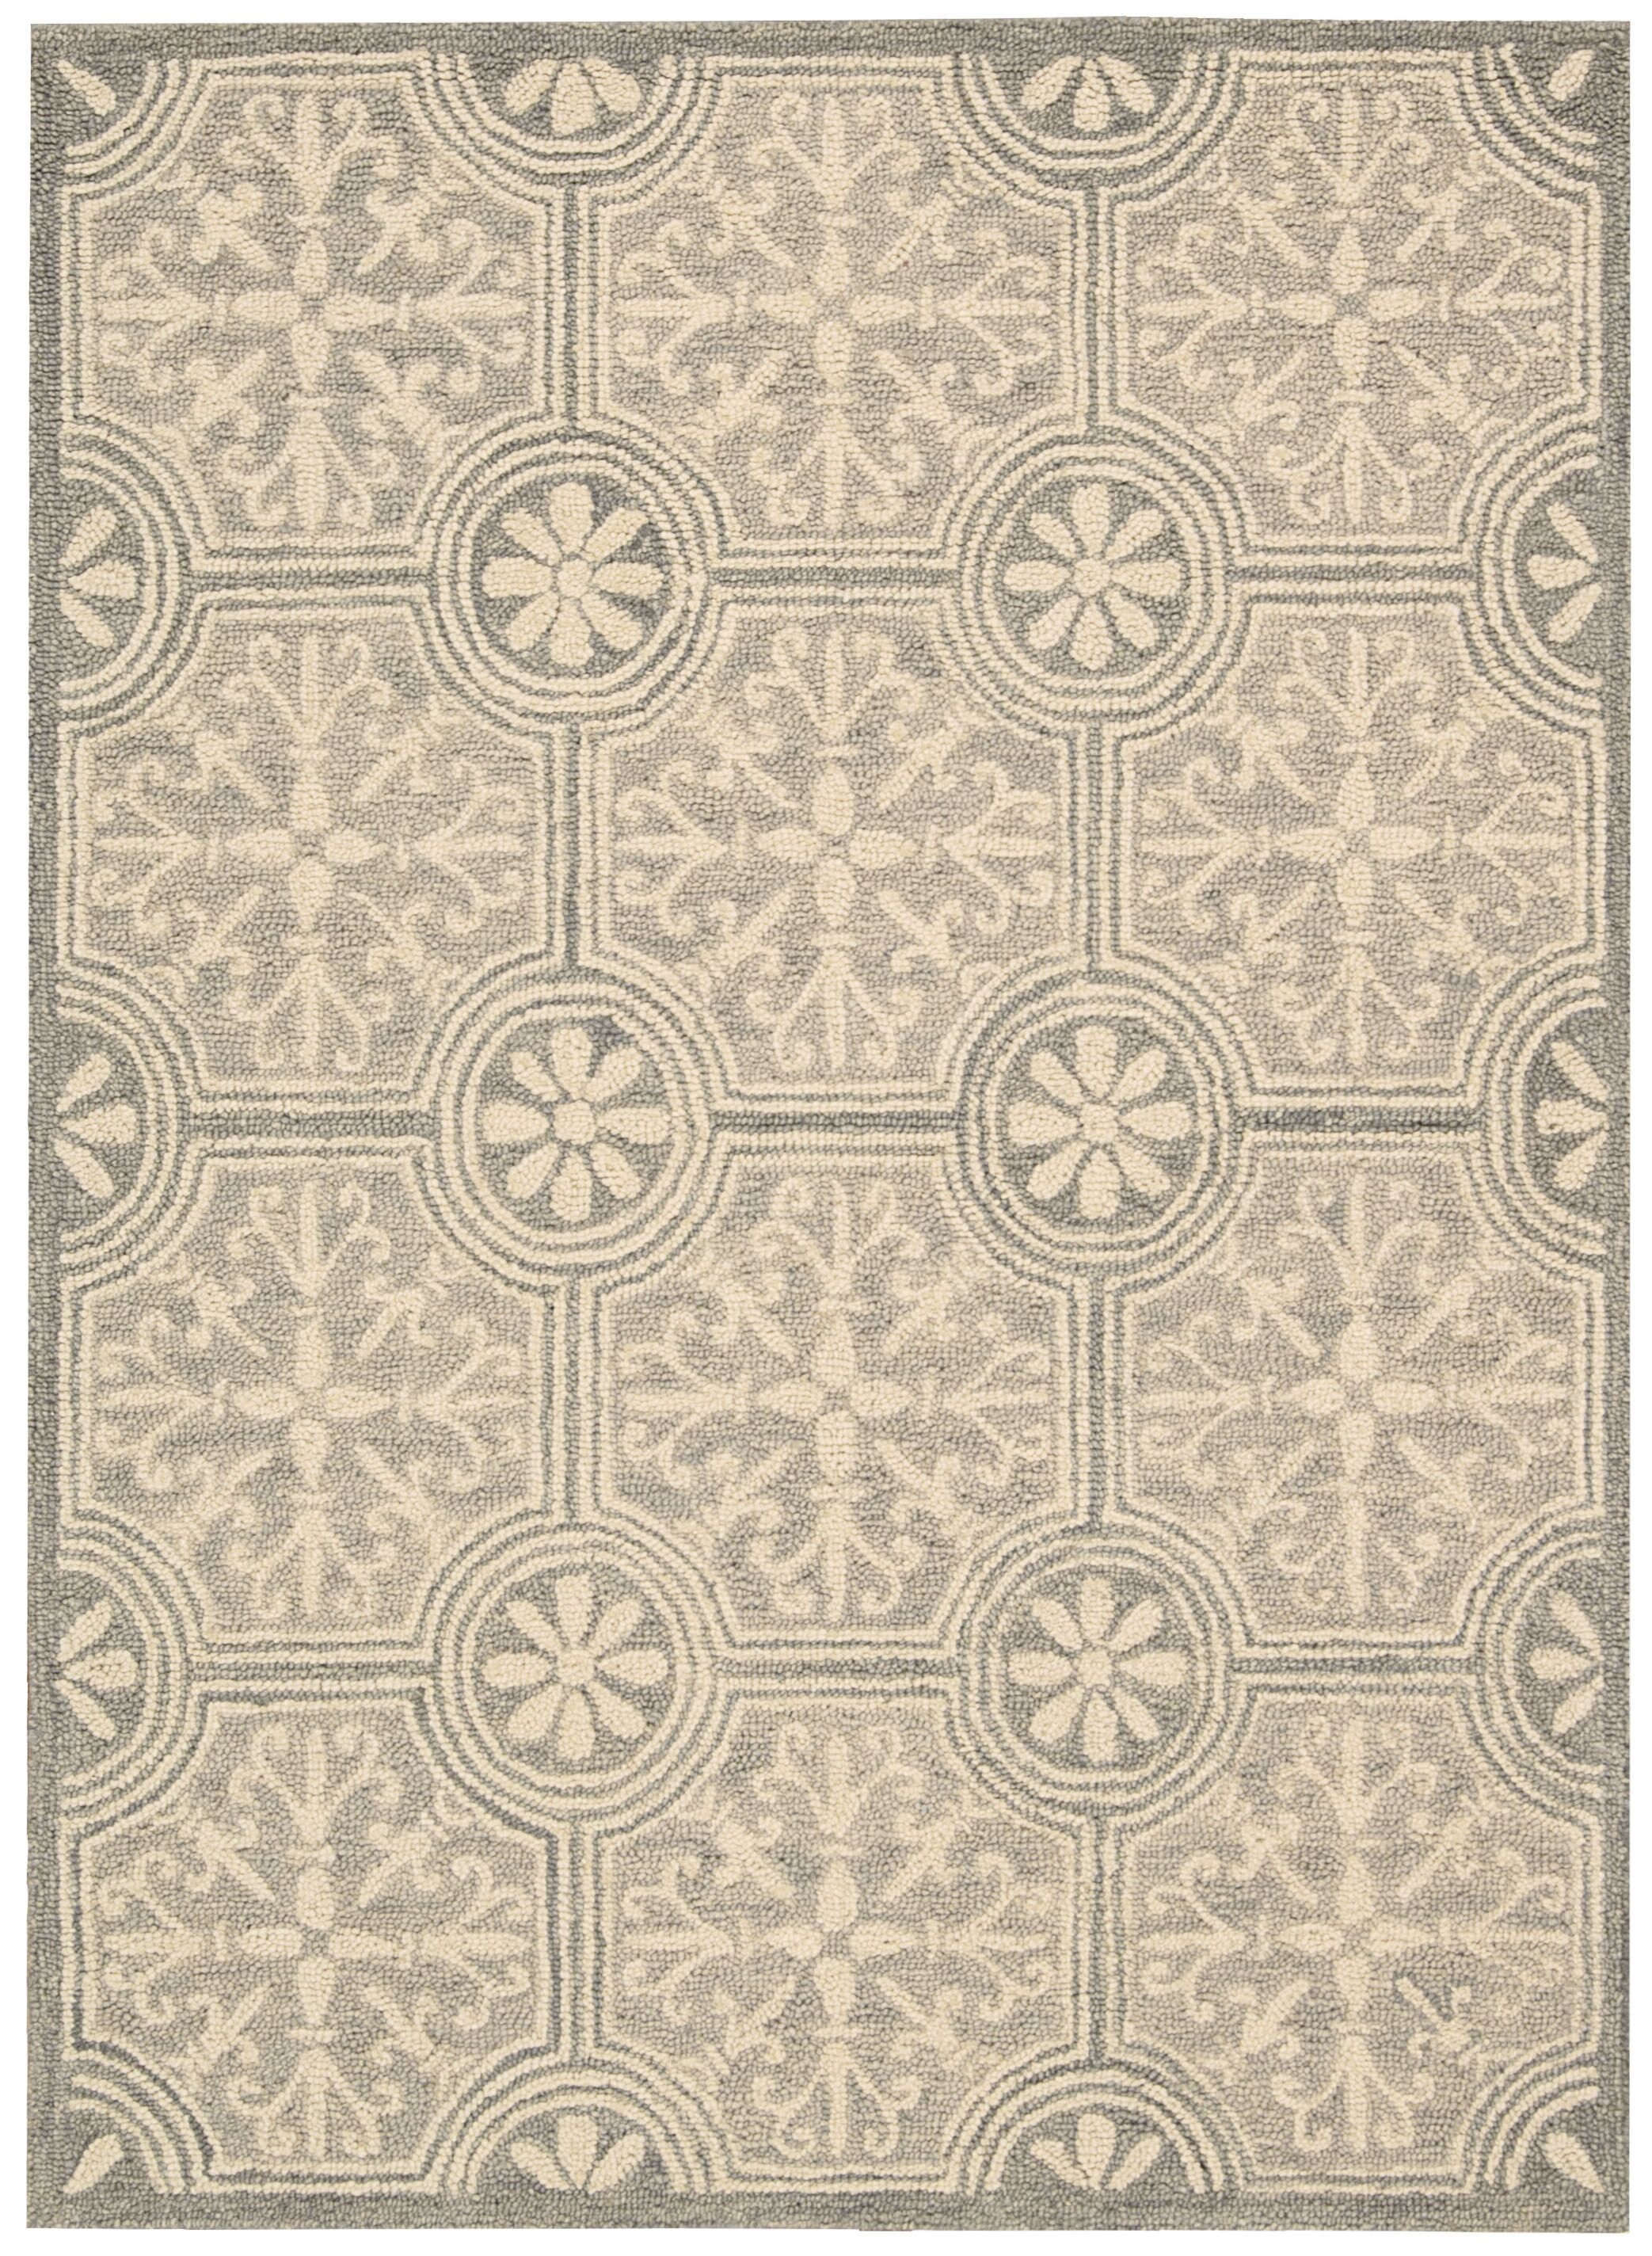 Tracie Hand-Tufted Gray Area Rug Rug Size: Rectangle 5' x 7'6